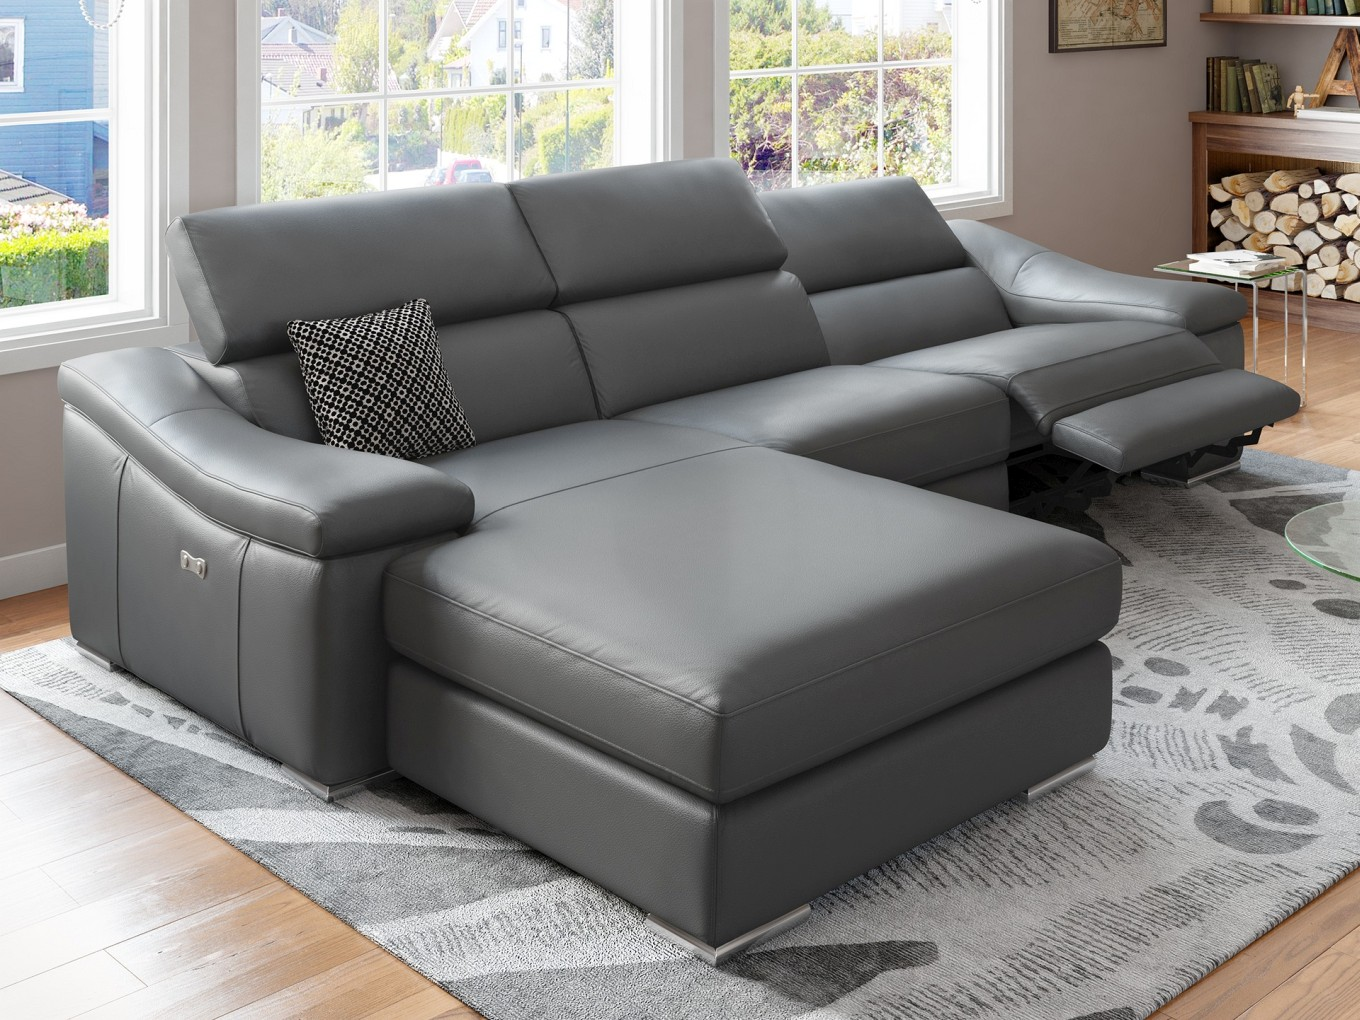 Leder couch ecksofa garnitur kino tv funktions sofa relax for Polsterecke leder